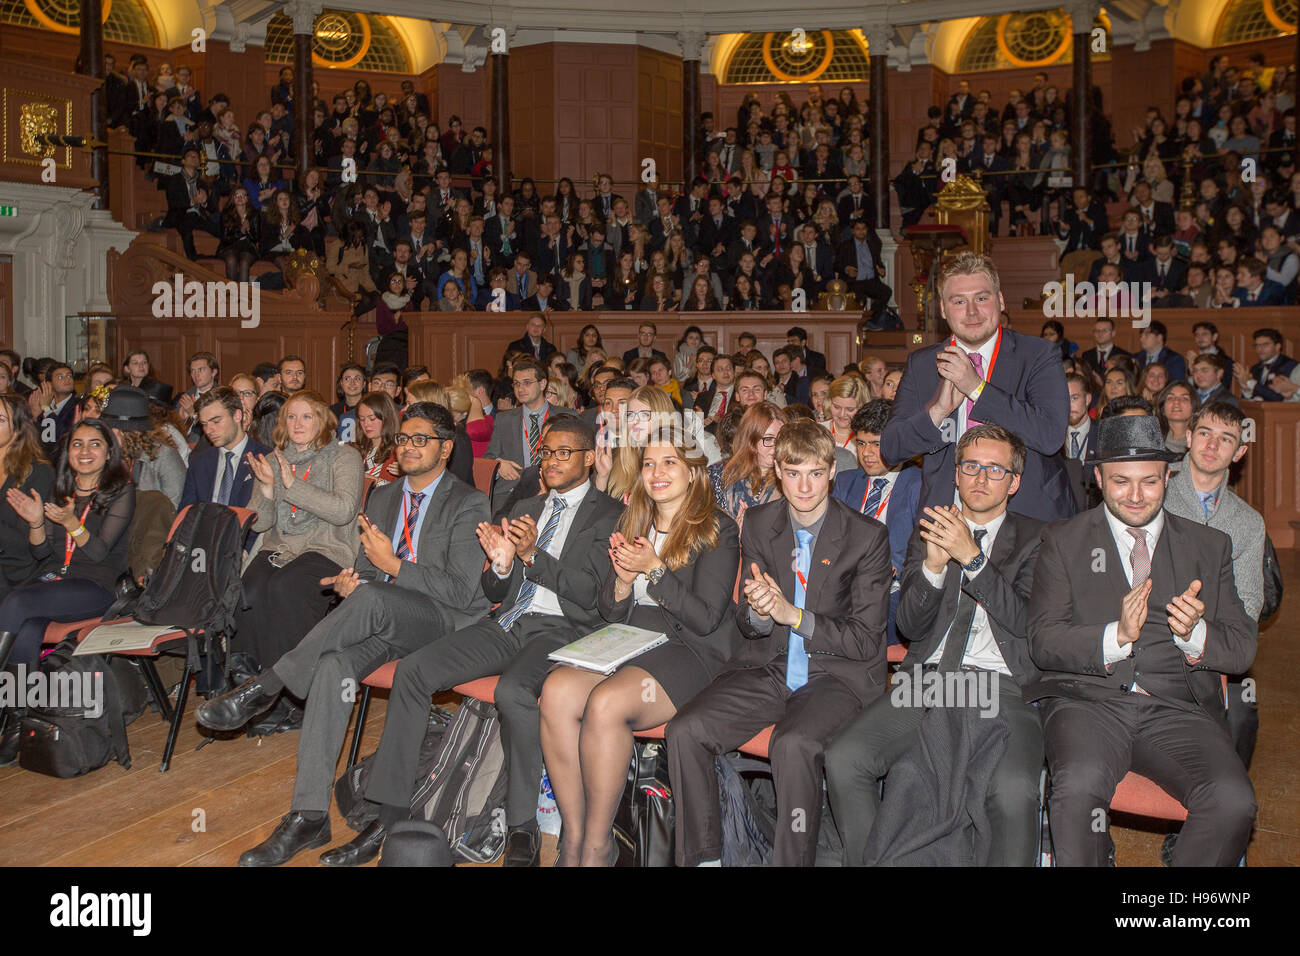 Students attending the closing awards ceremony of OxIMUN in the Sheldonian Theatre ini Oxford. From a series of Stock Photo